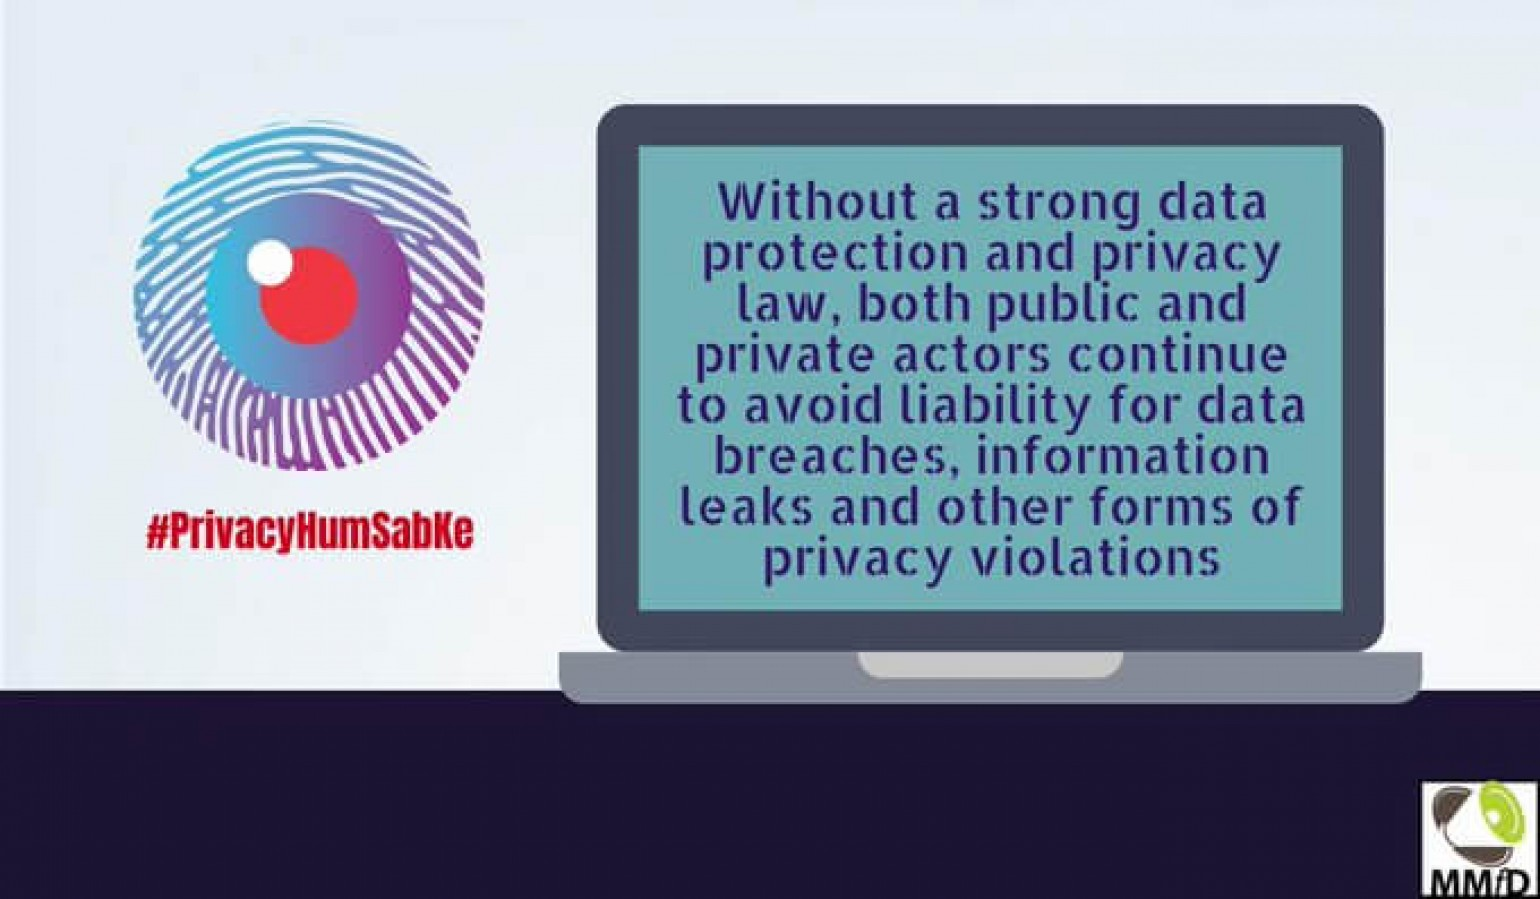 MMfD submits petition to the Senate of Pakistan to expedite legislation to protect citizen's privacy